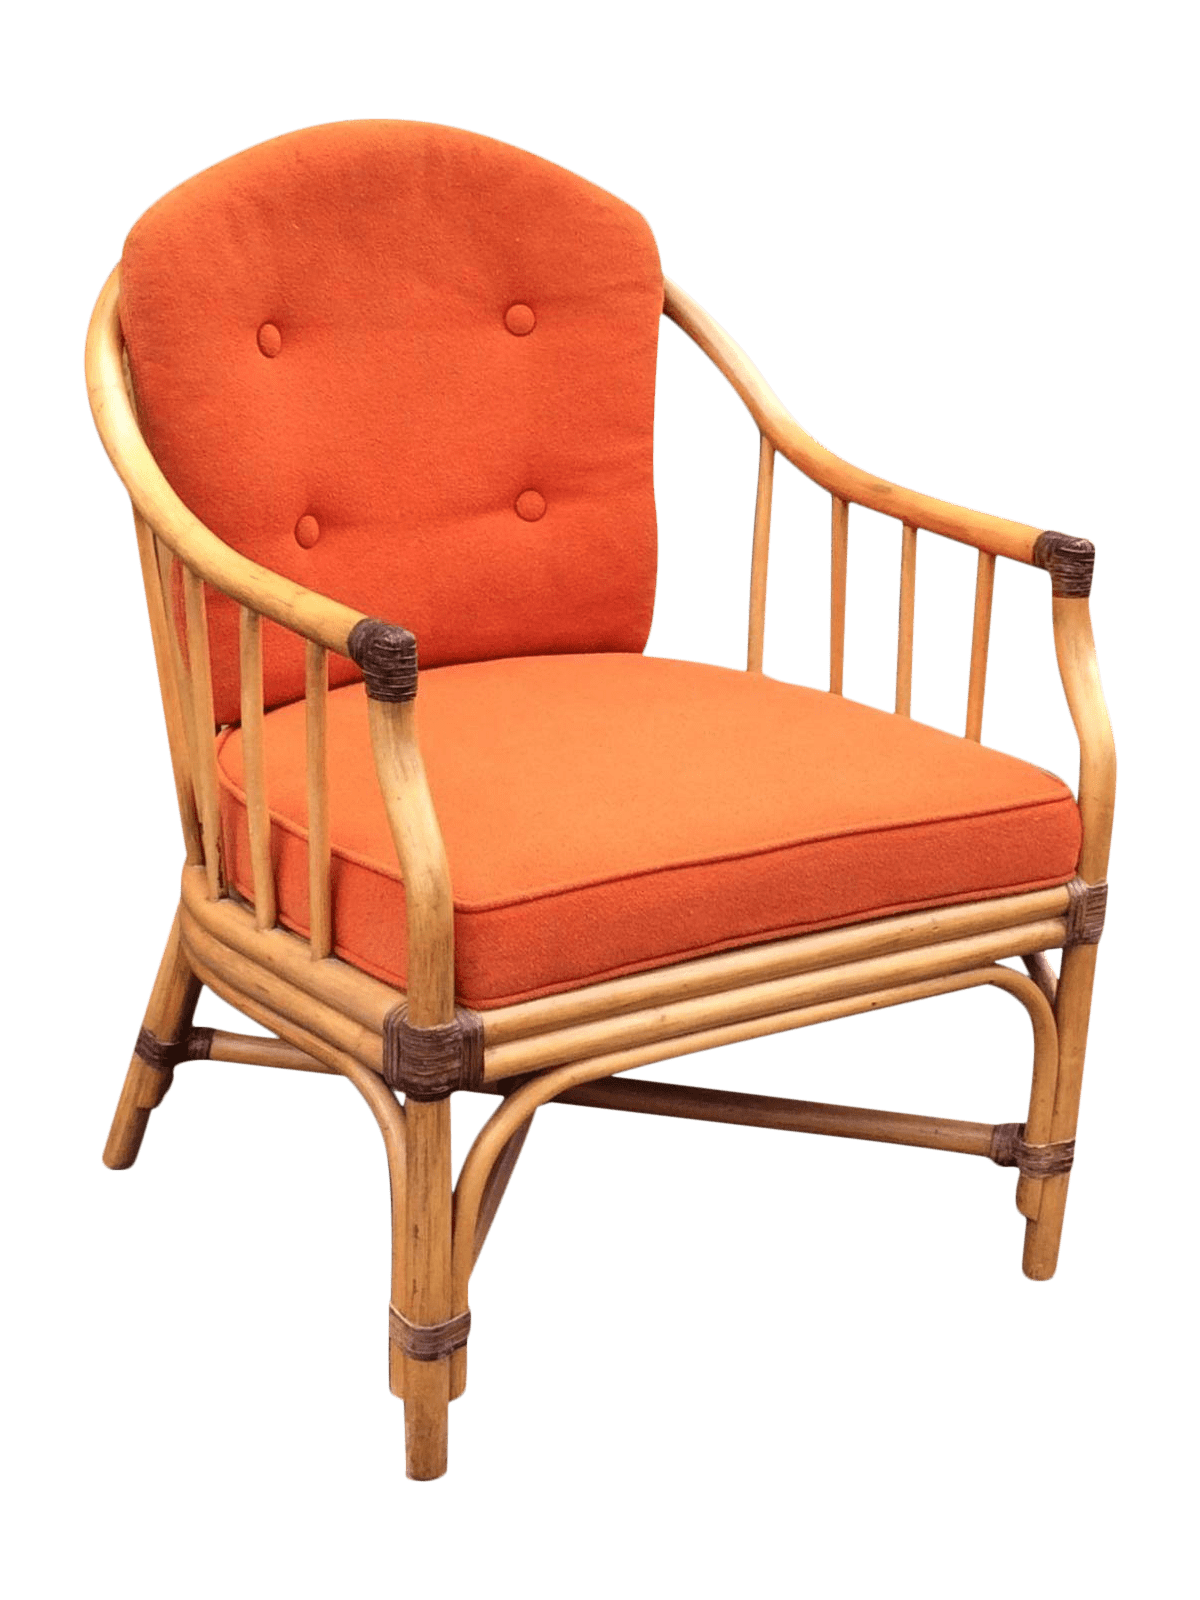 shelby williams chairs executive chair vintage bamboo lounge by inc chairish